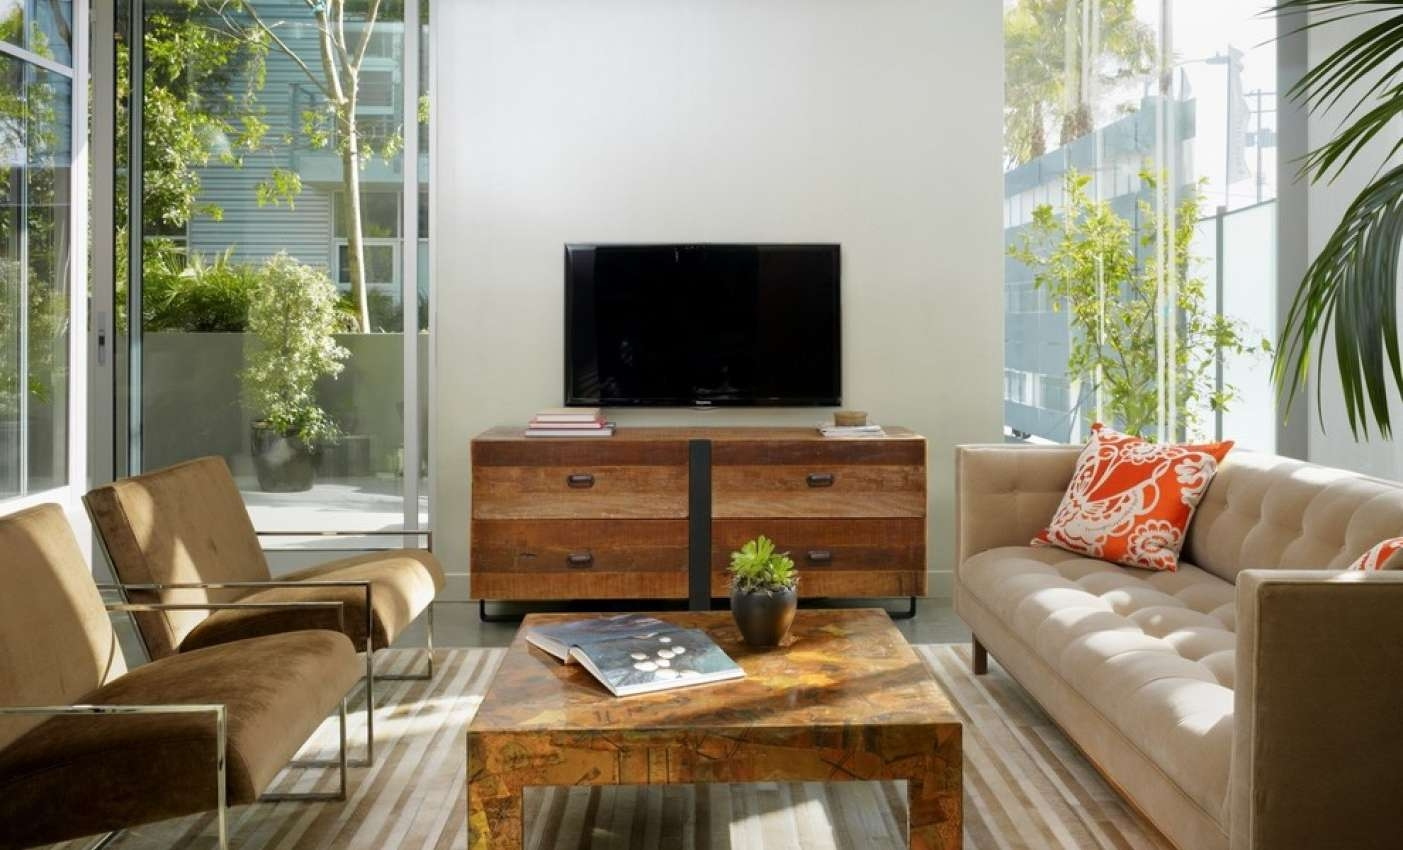 Table : 35 Best Cantilever Tv Stands Images On Pinterest | Coffee Inside Coffee Tables And Tv Stands (View 15 of 15)